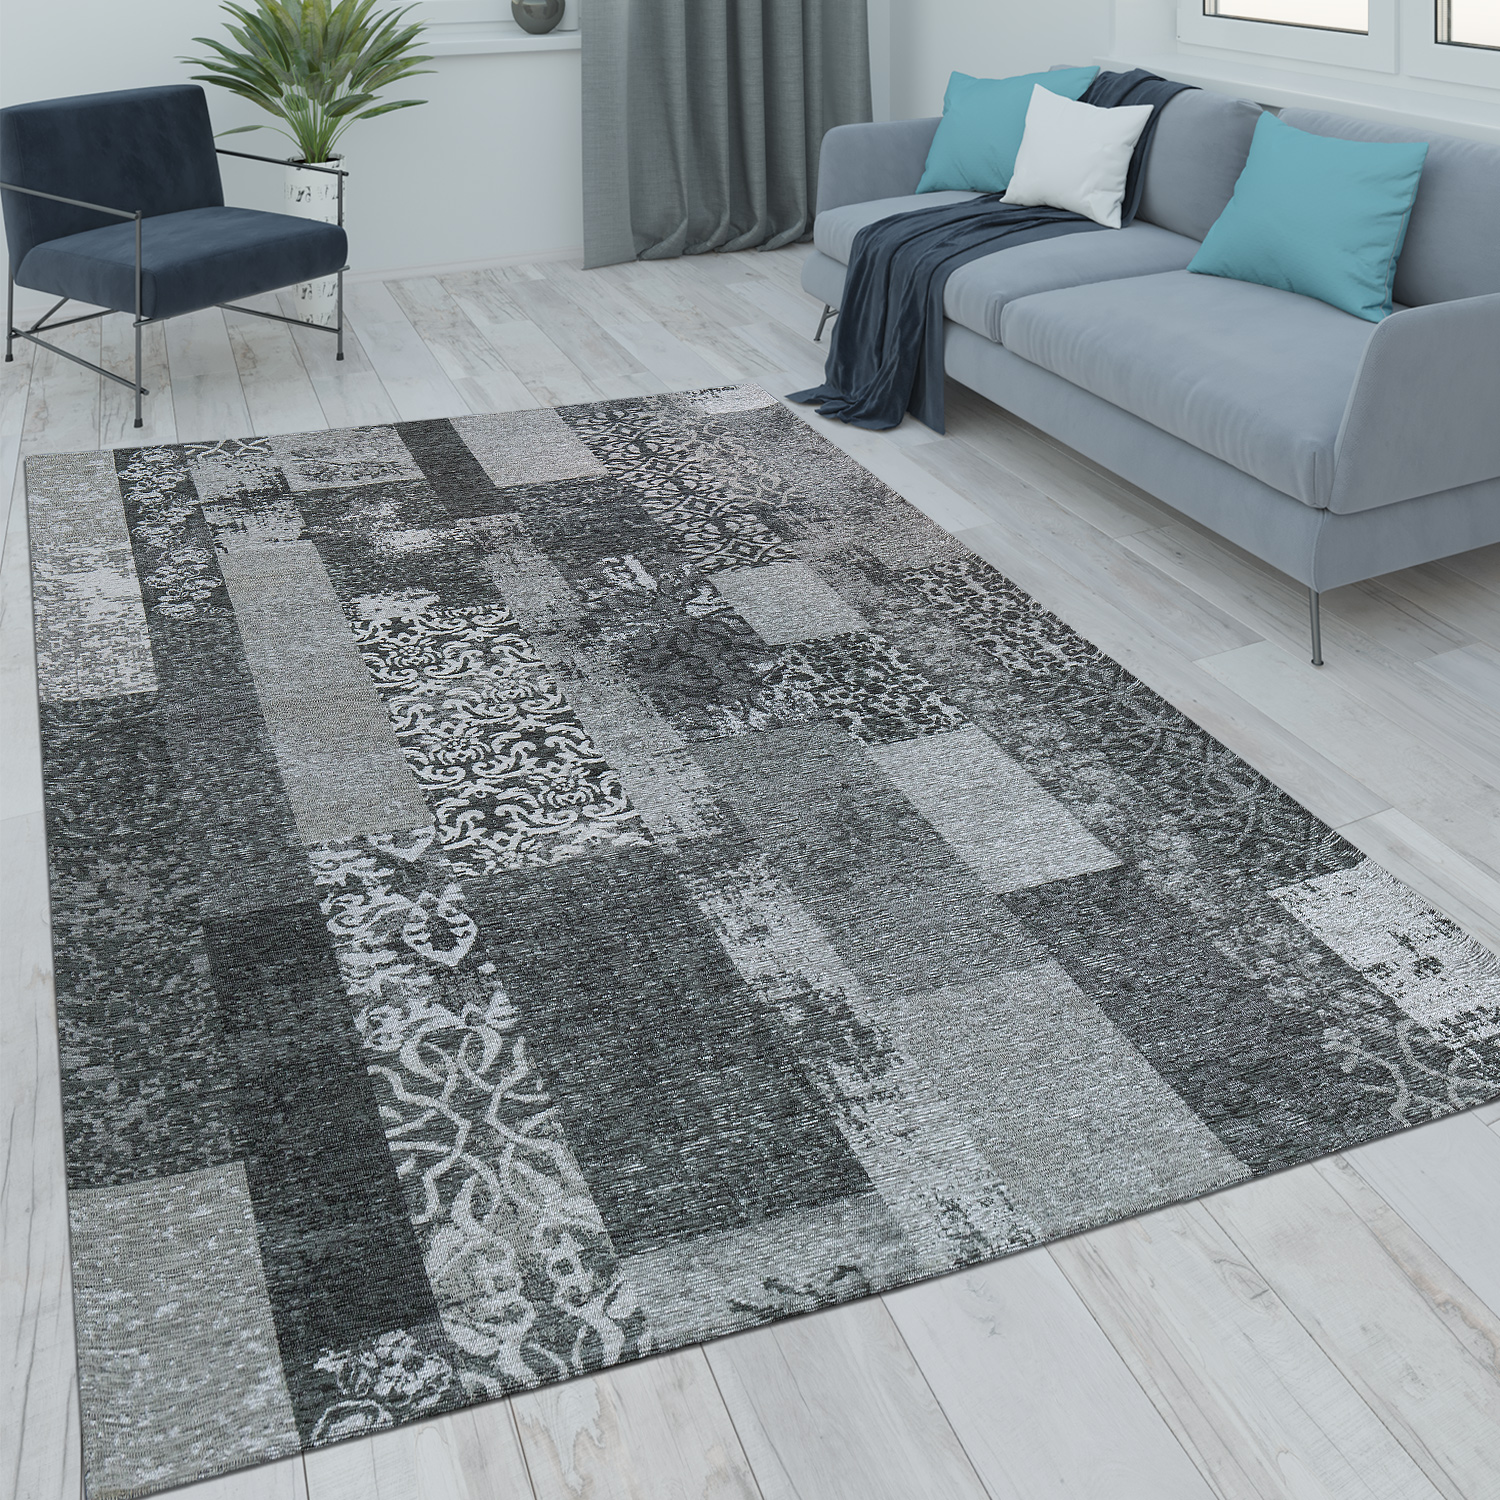 tapis poils ras patchwork salon moderne aspect vintage floral gris noir tapis tapis vintage. Black Bedroom Furniture Sets. Home Design Ideas